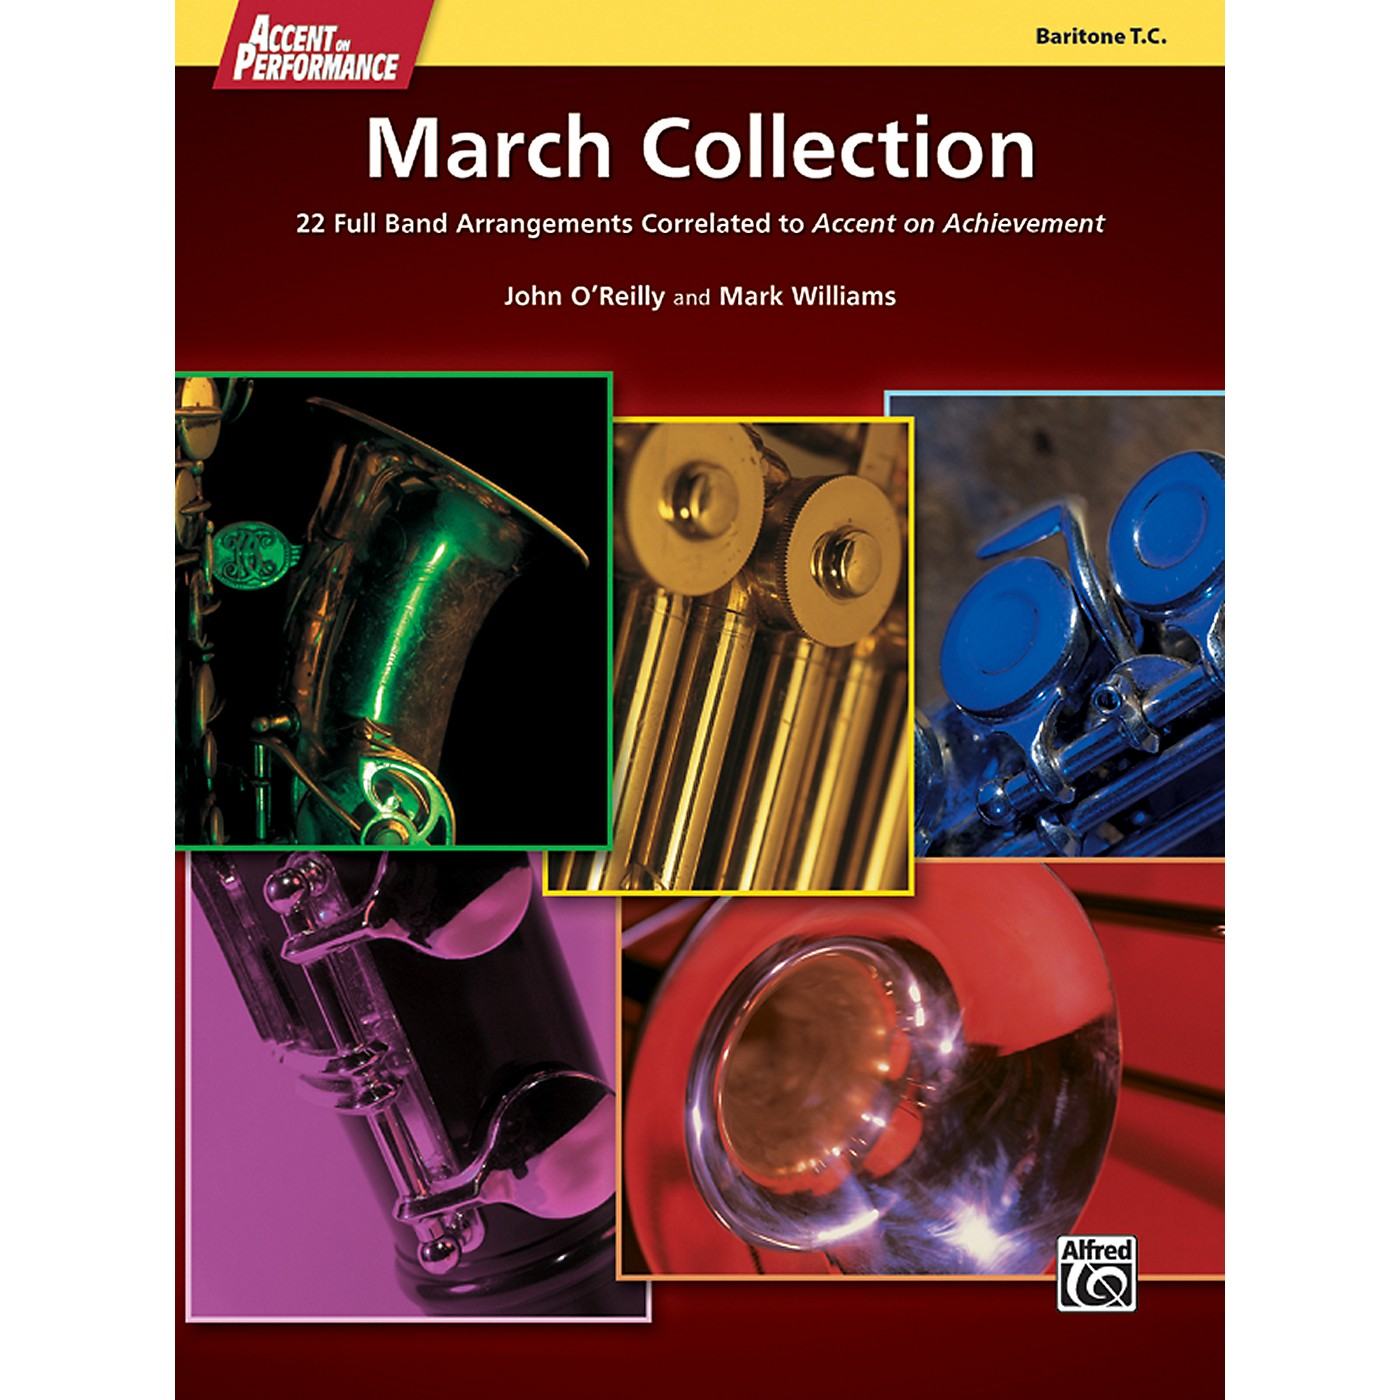 Alfred Accent on Performance March Collection Baritone Treble Clef Book thumbnail